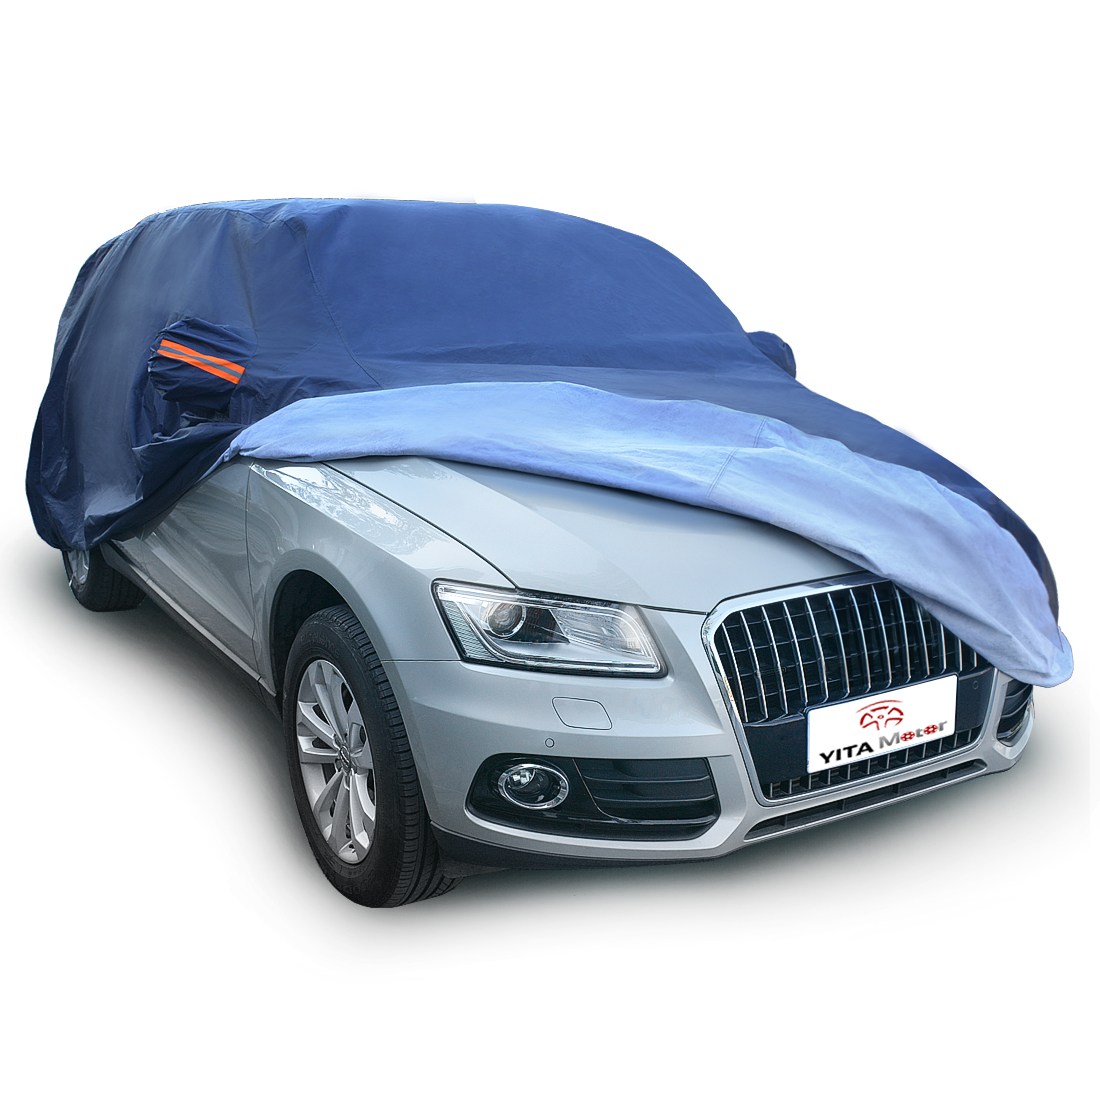 Heavy Duty Thick Car Cover Rain Snow Sun Protector For Range Rover 2002-2012